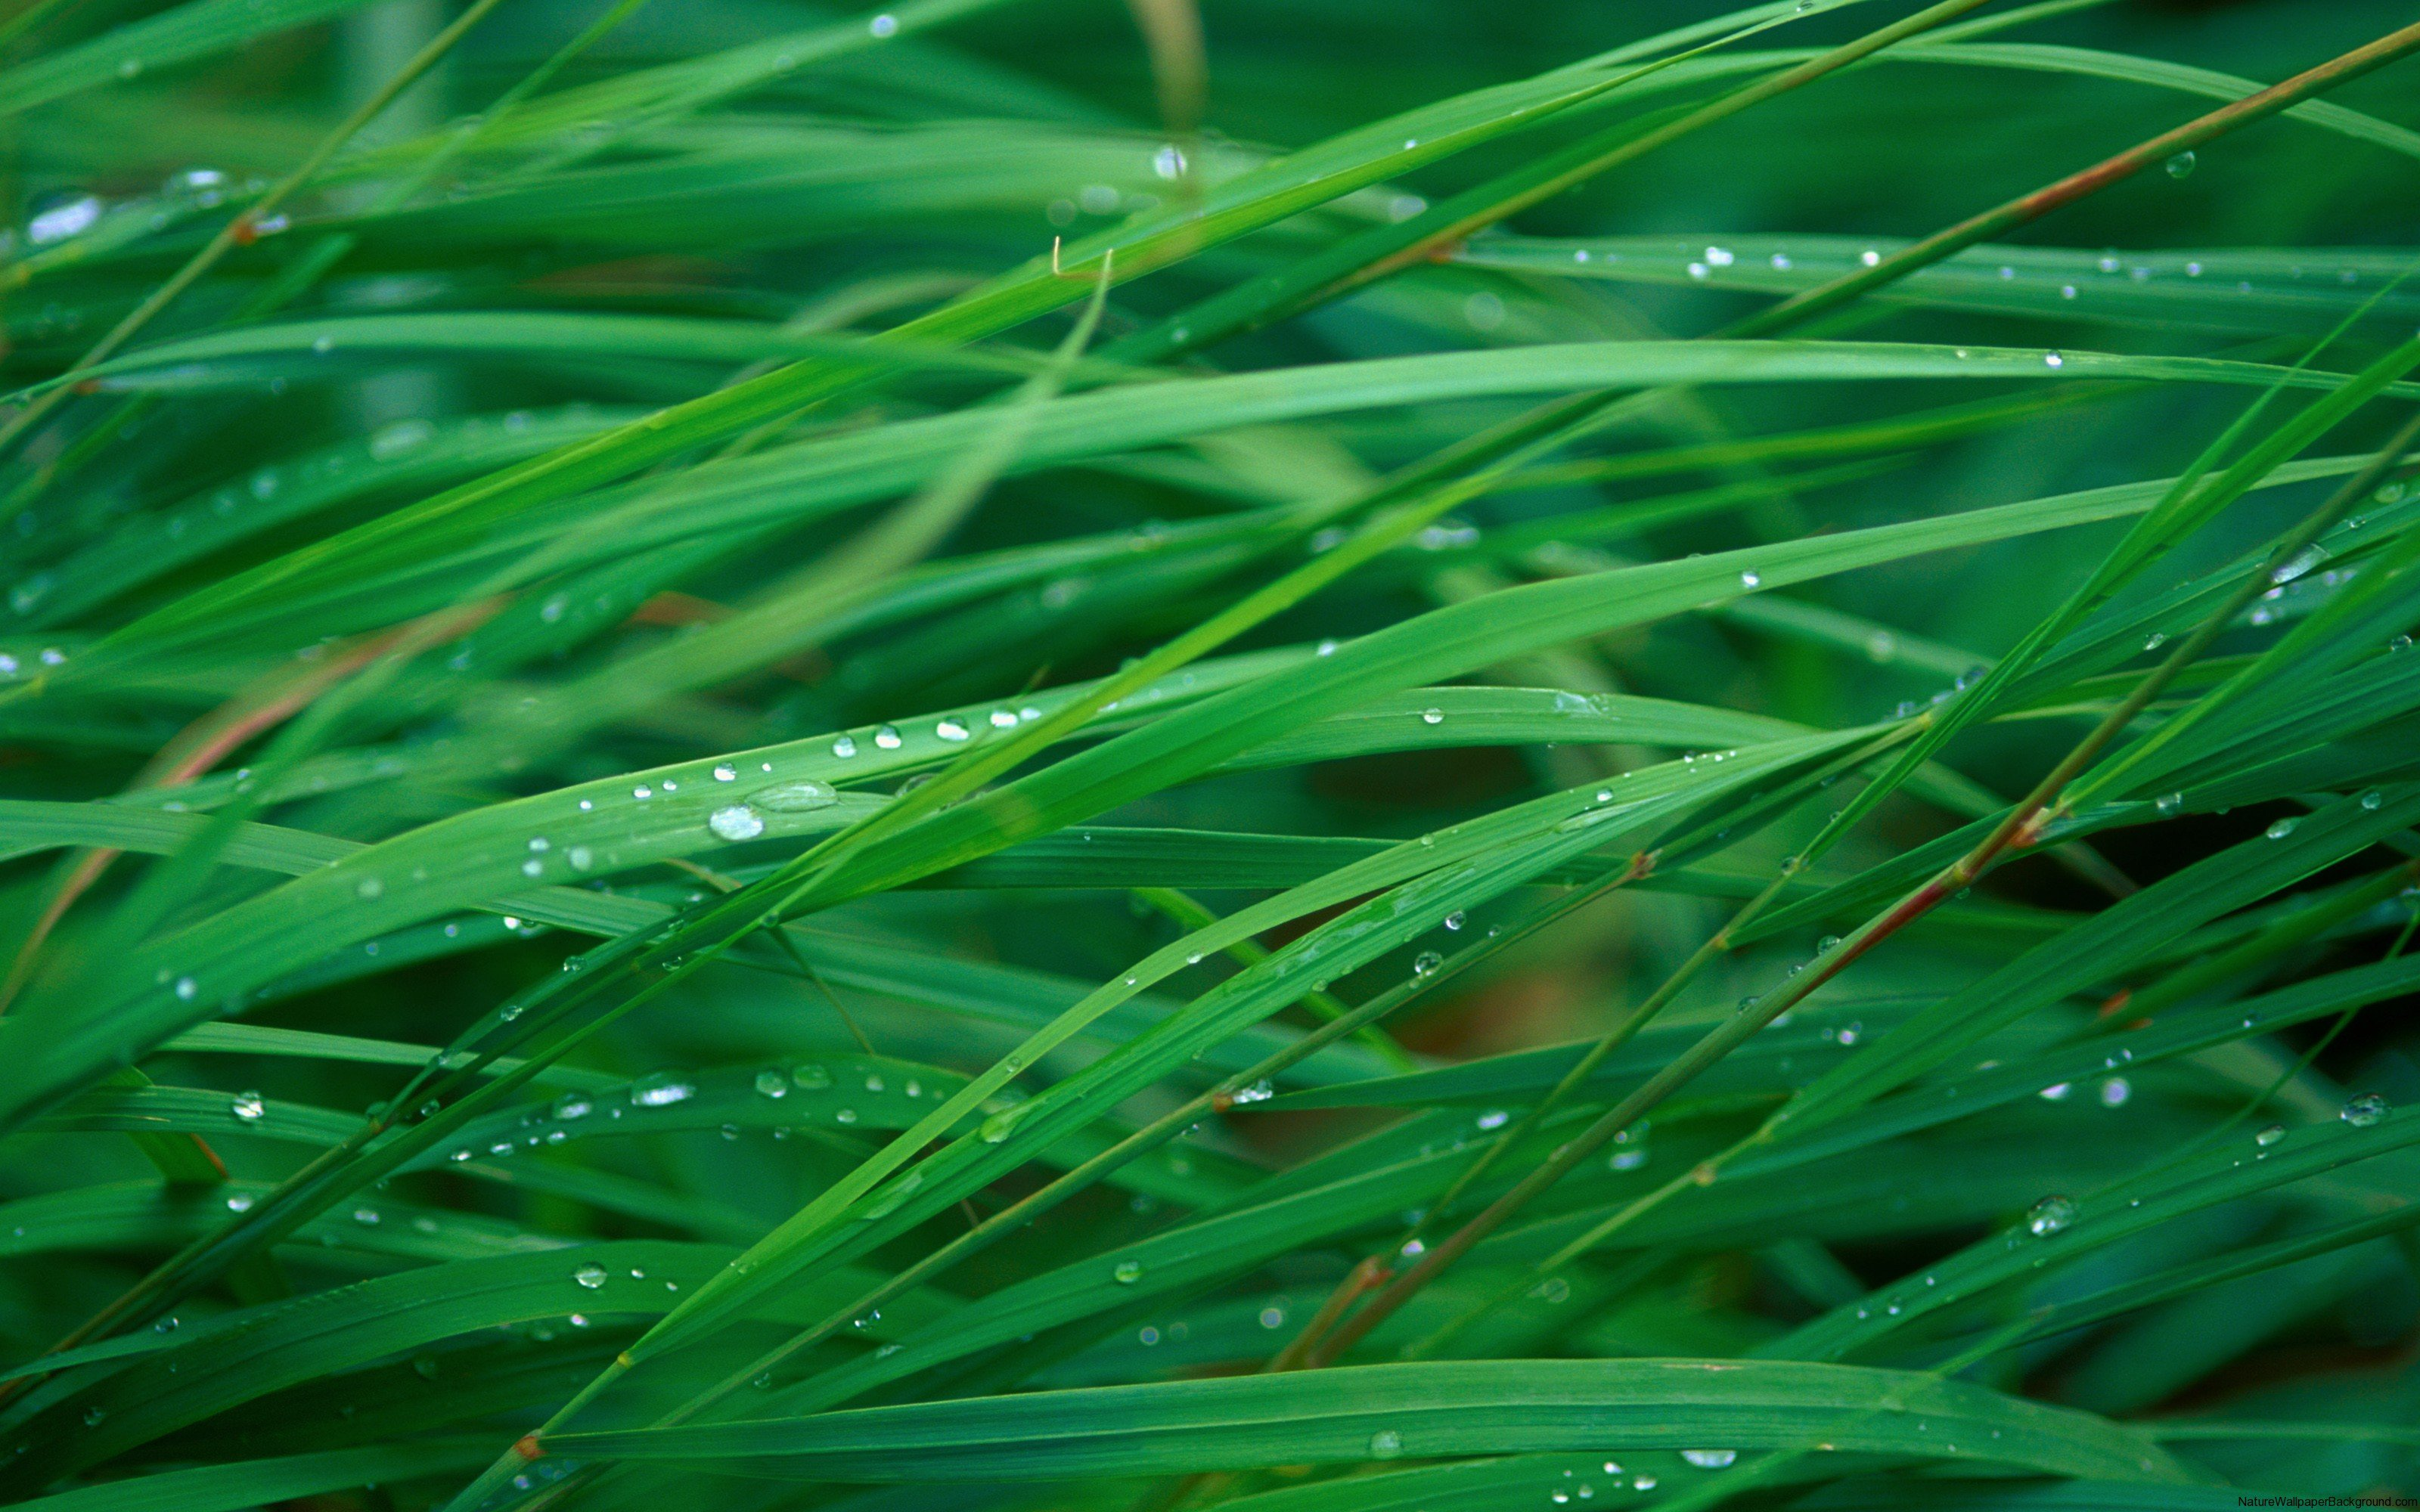 Up-close-blades-of-grass-with-water-droplets-wallpaper